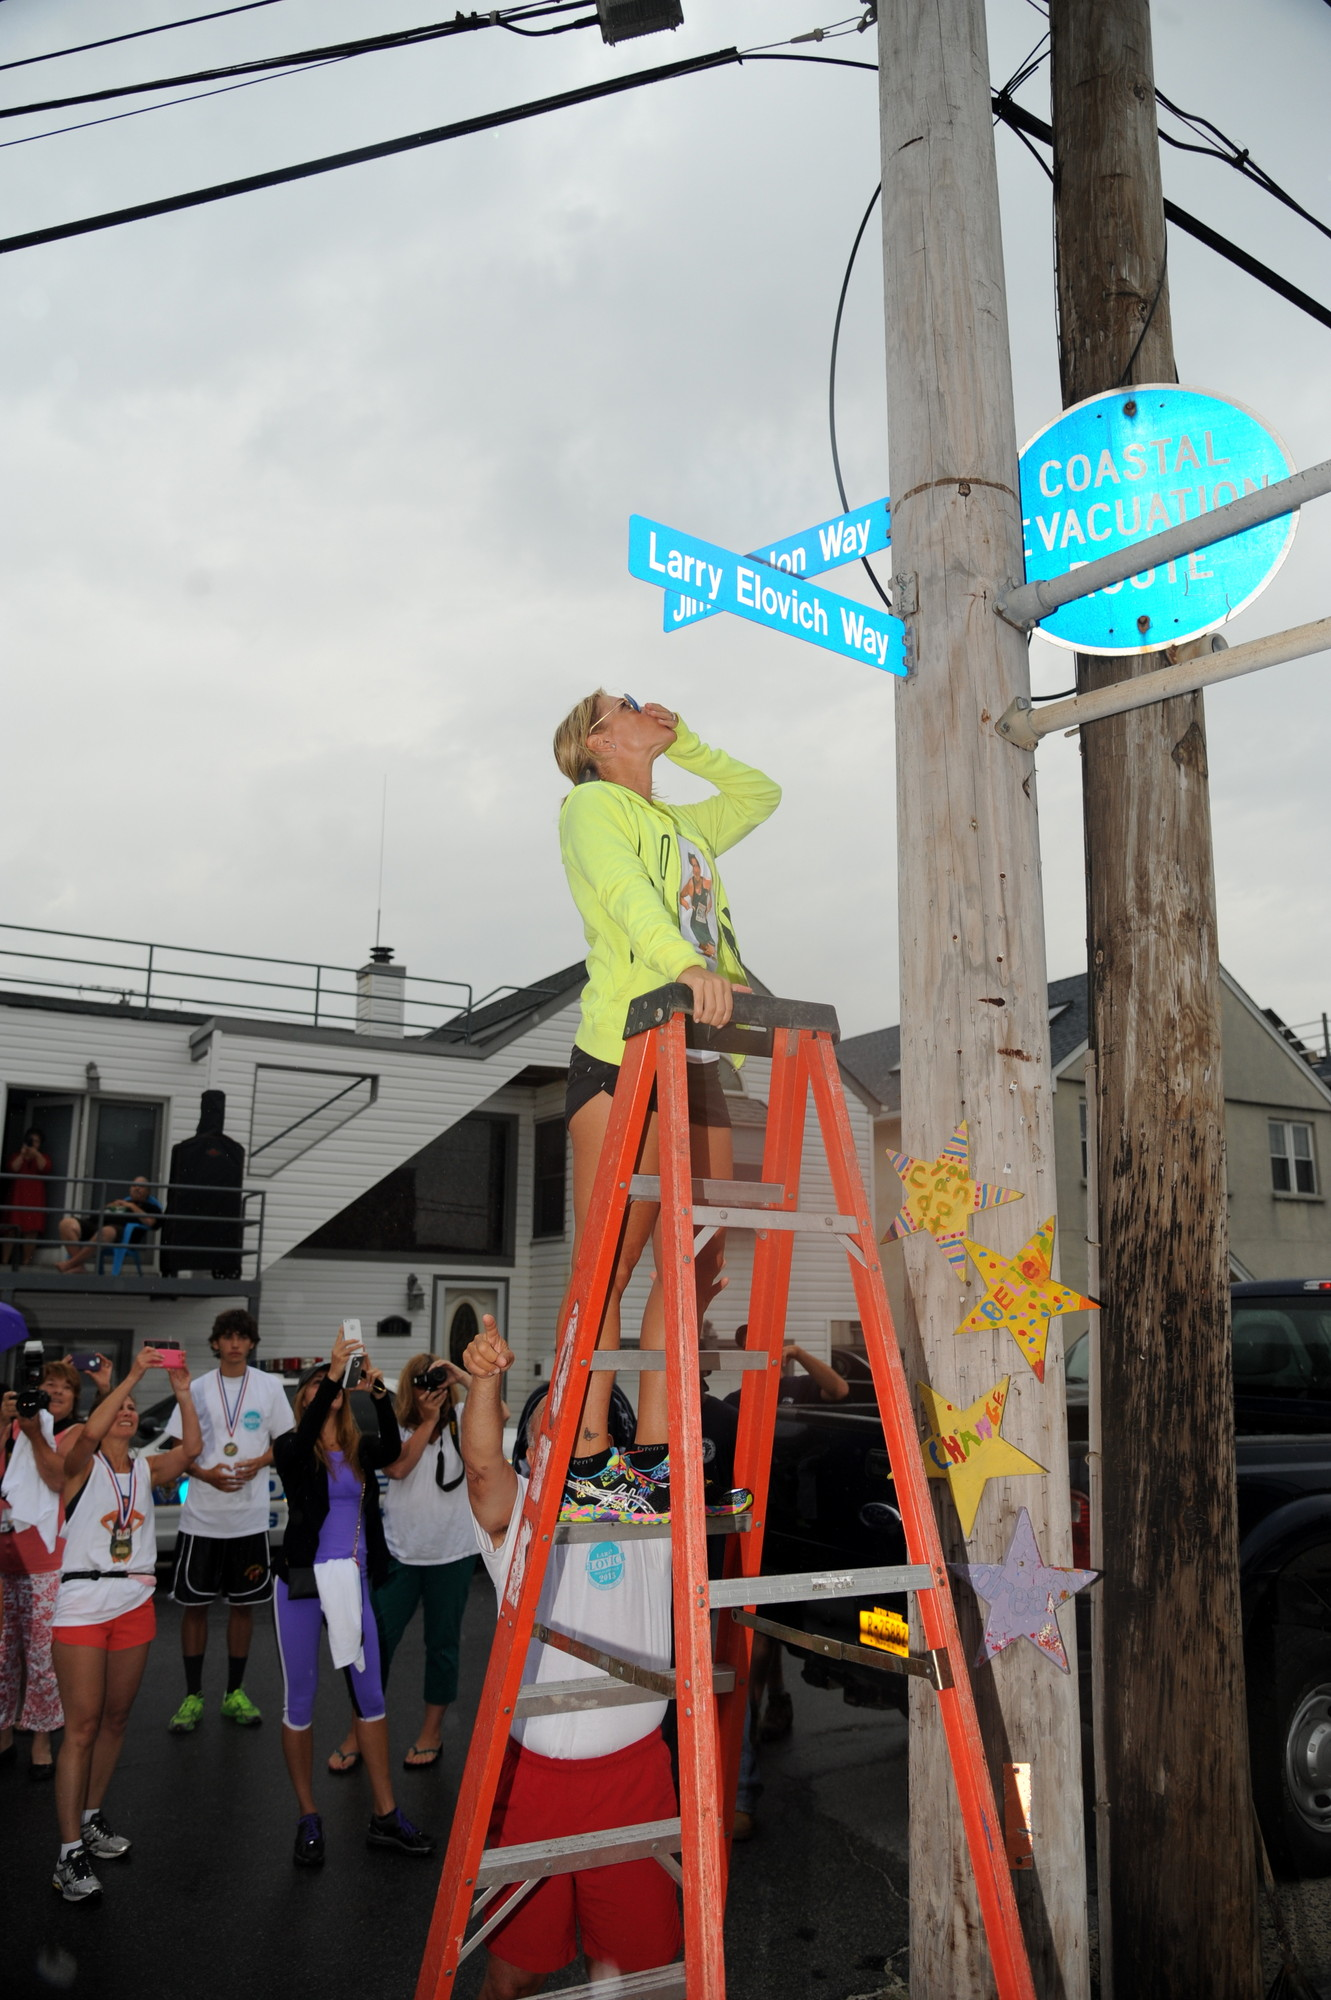 Lauree Elovich-Vasta, the daughter of the late Larry Elovich, blew her dad a kiss when a street sign was unveiled in his memory at New York Avenue.